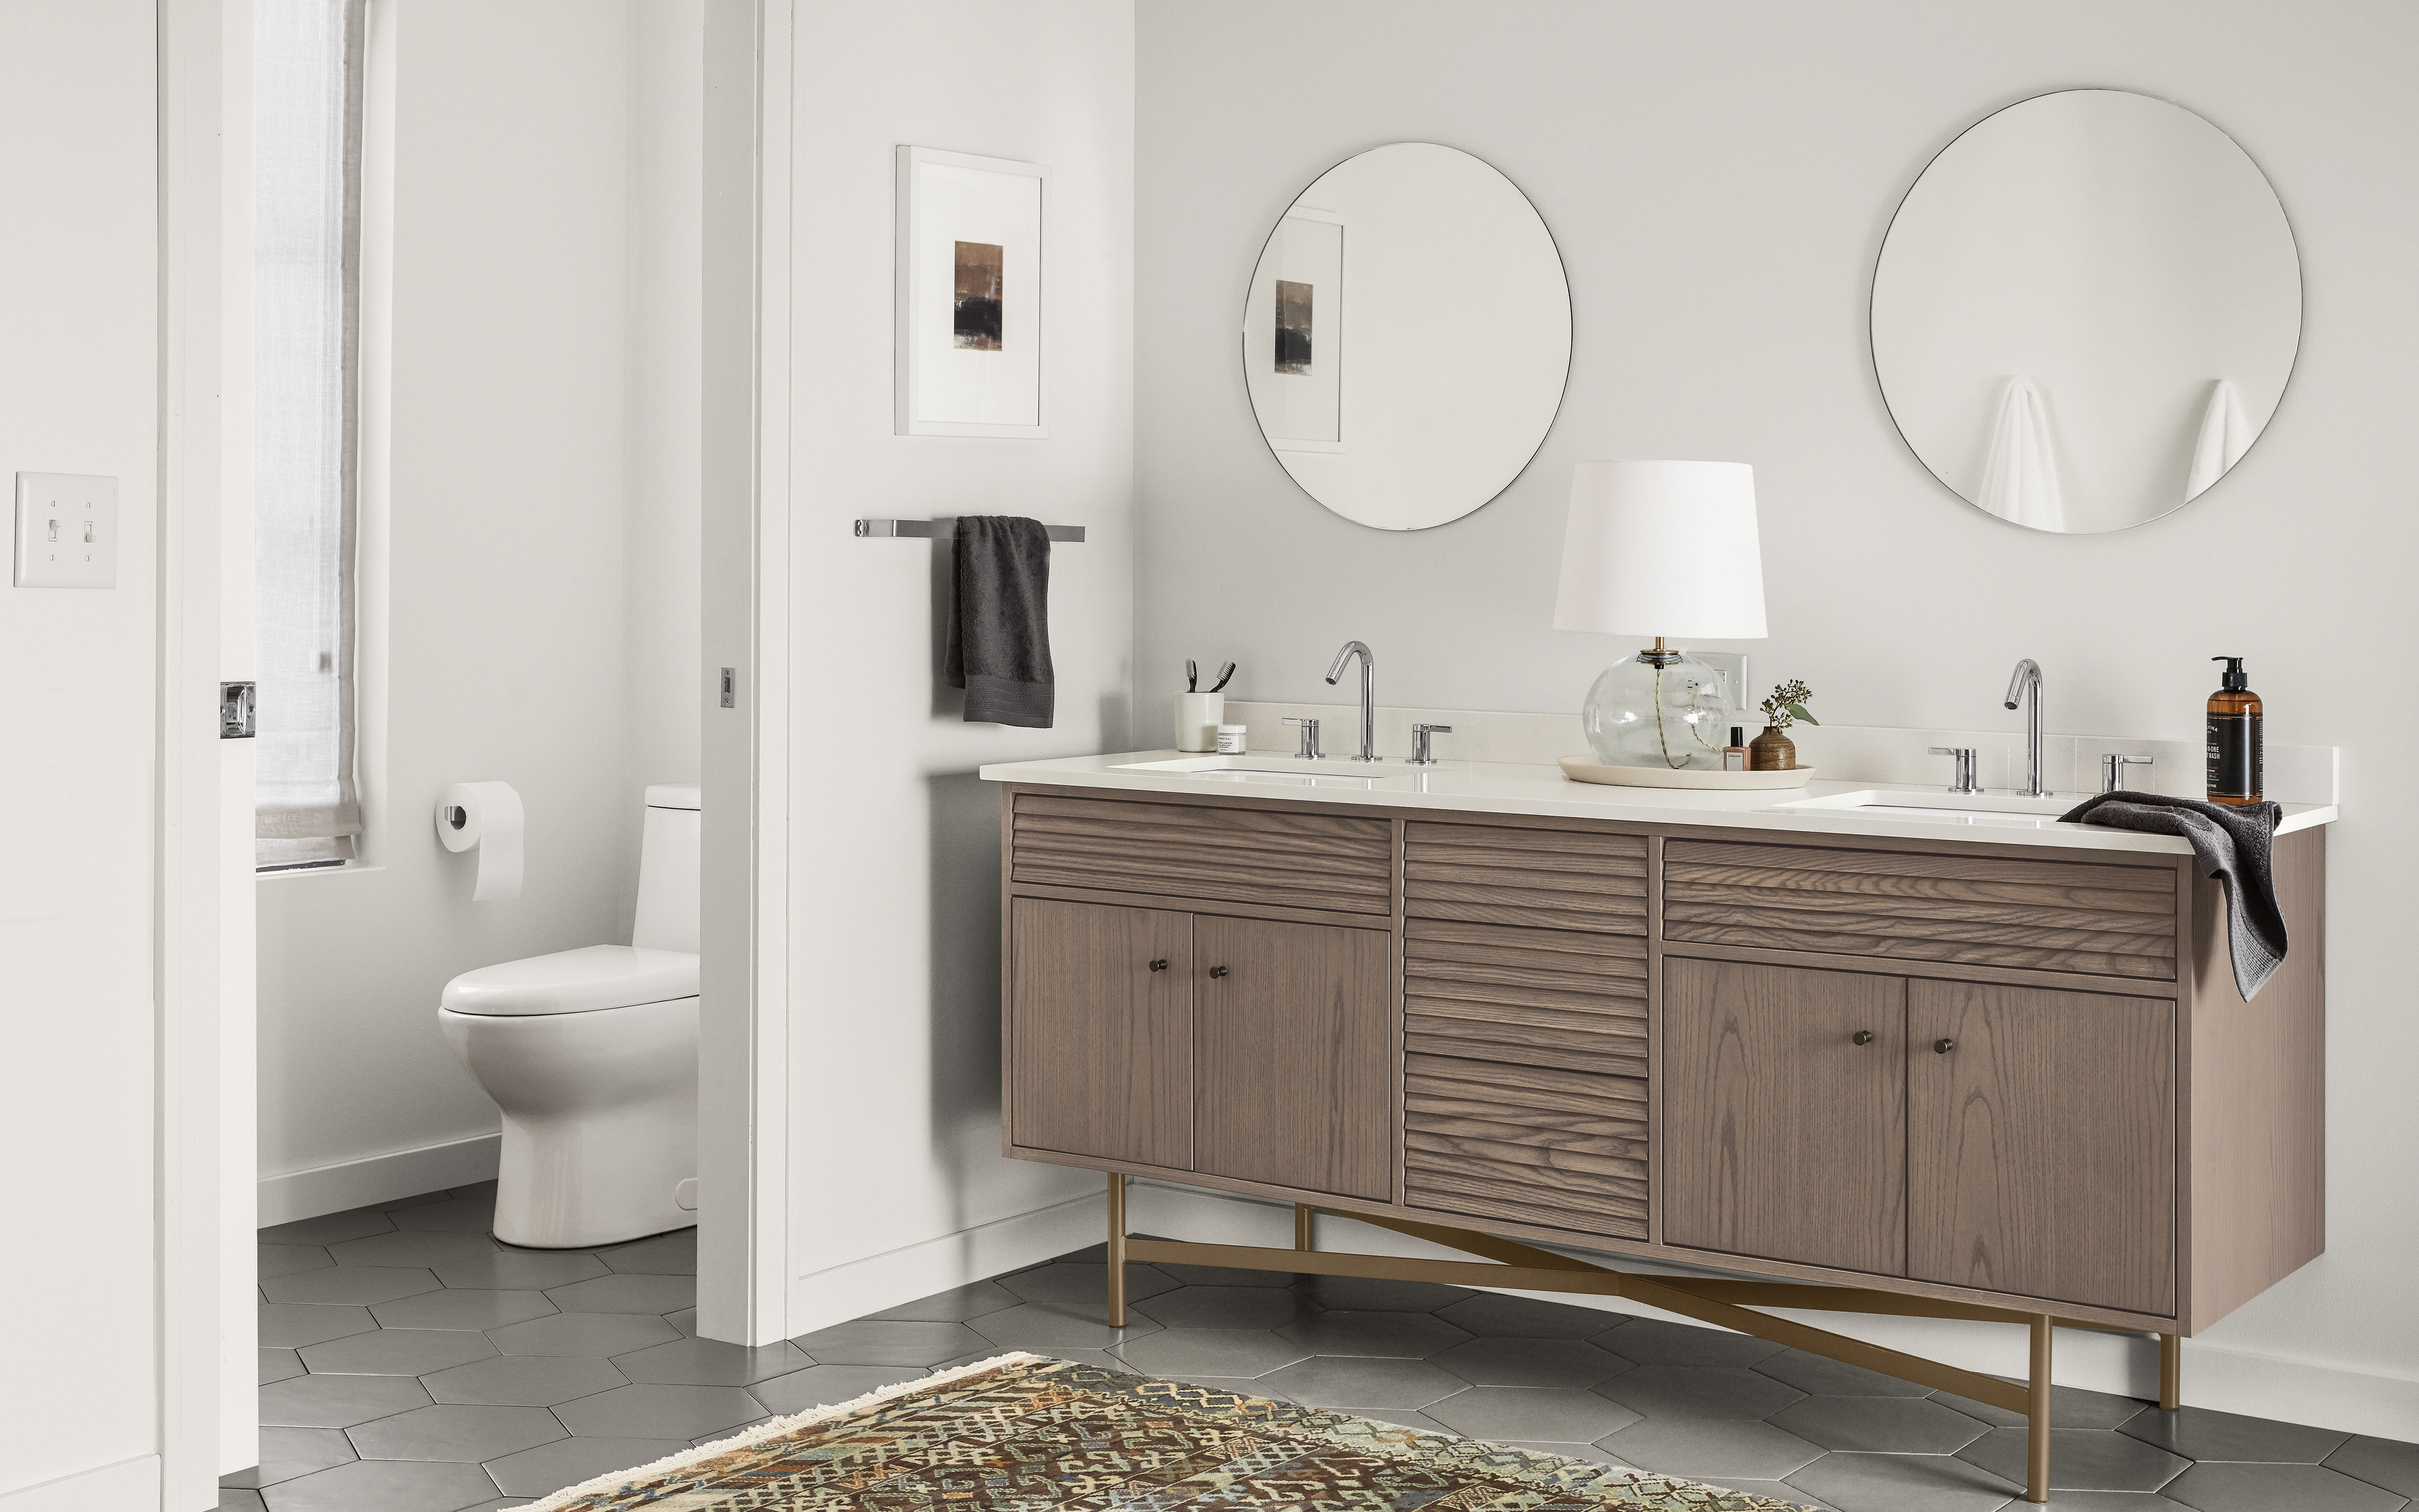 Room Amp Board Introduces New Bath Vanity Collection Products